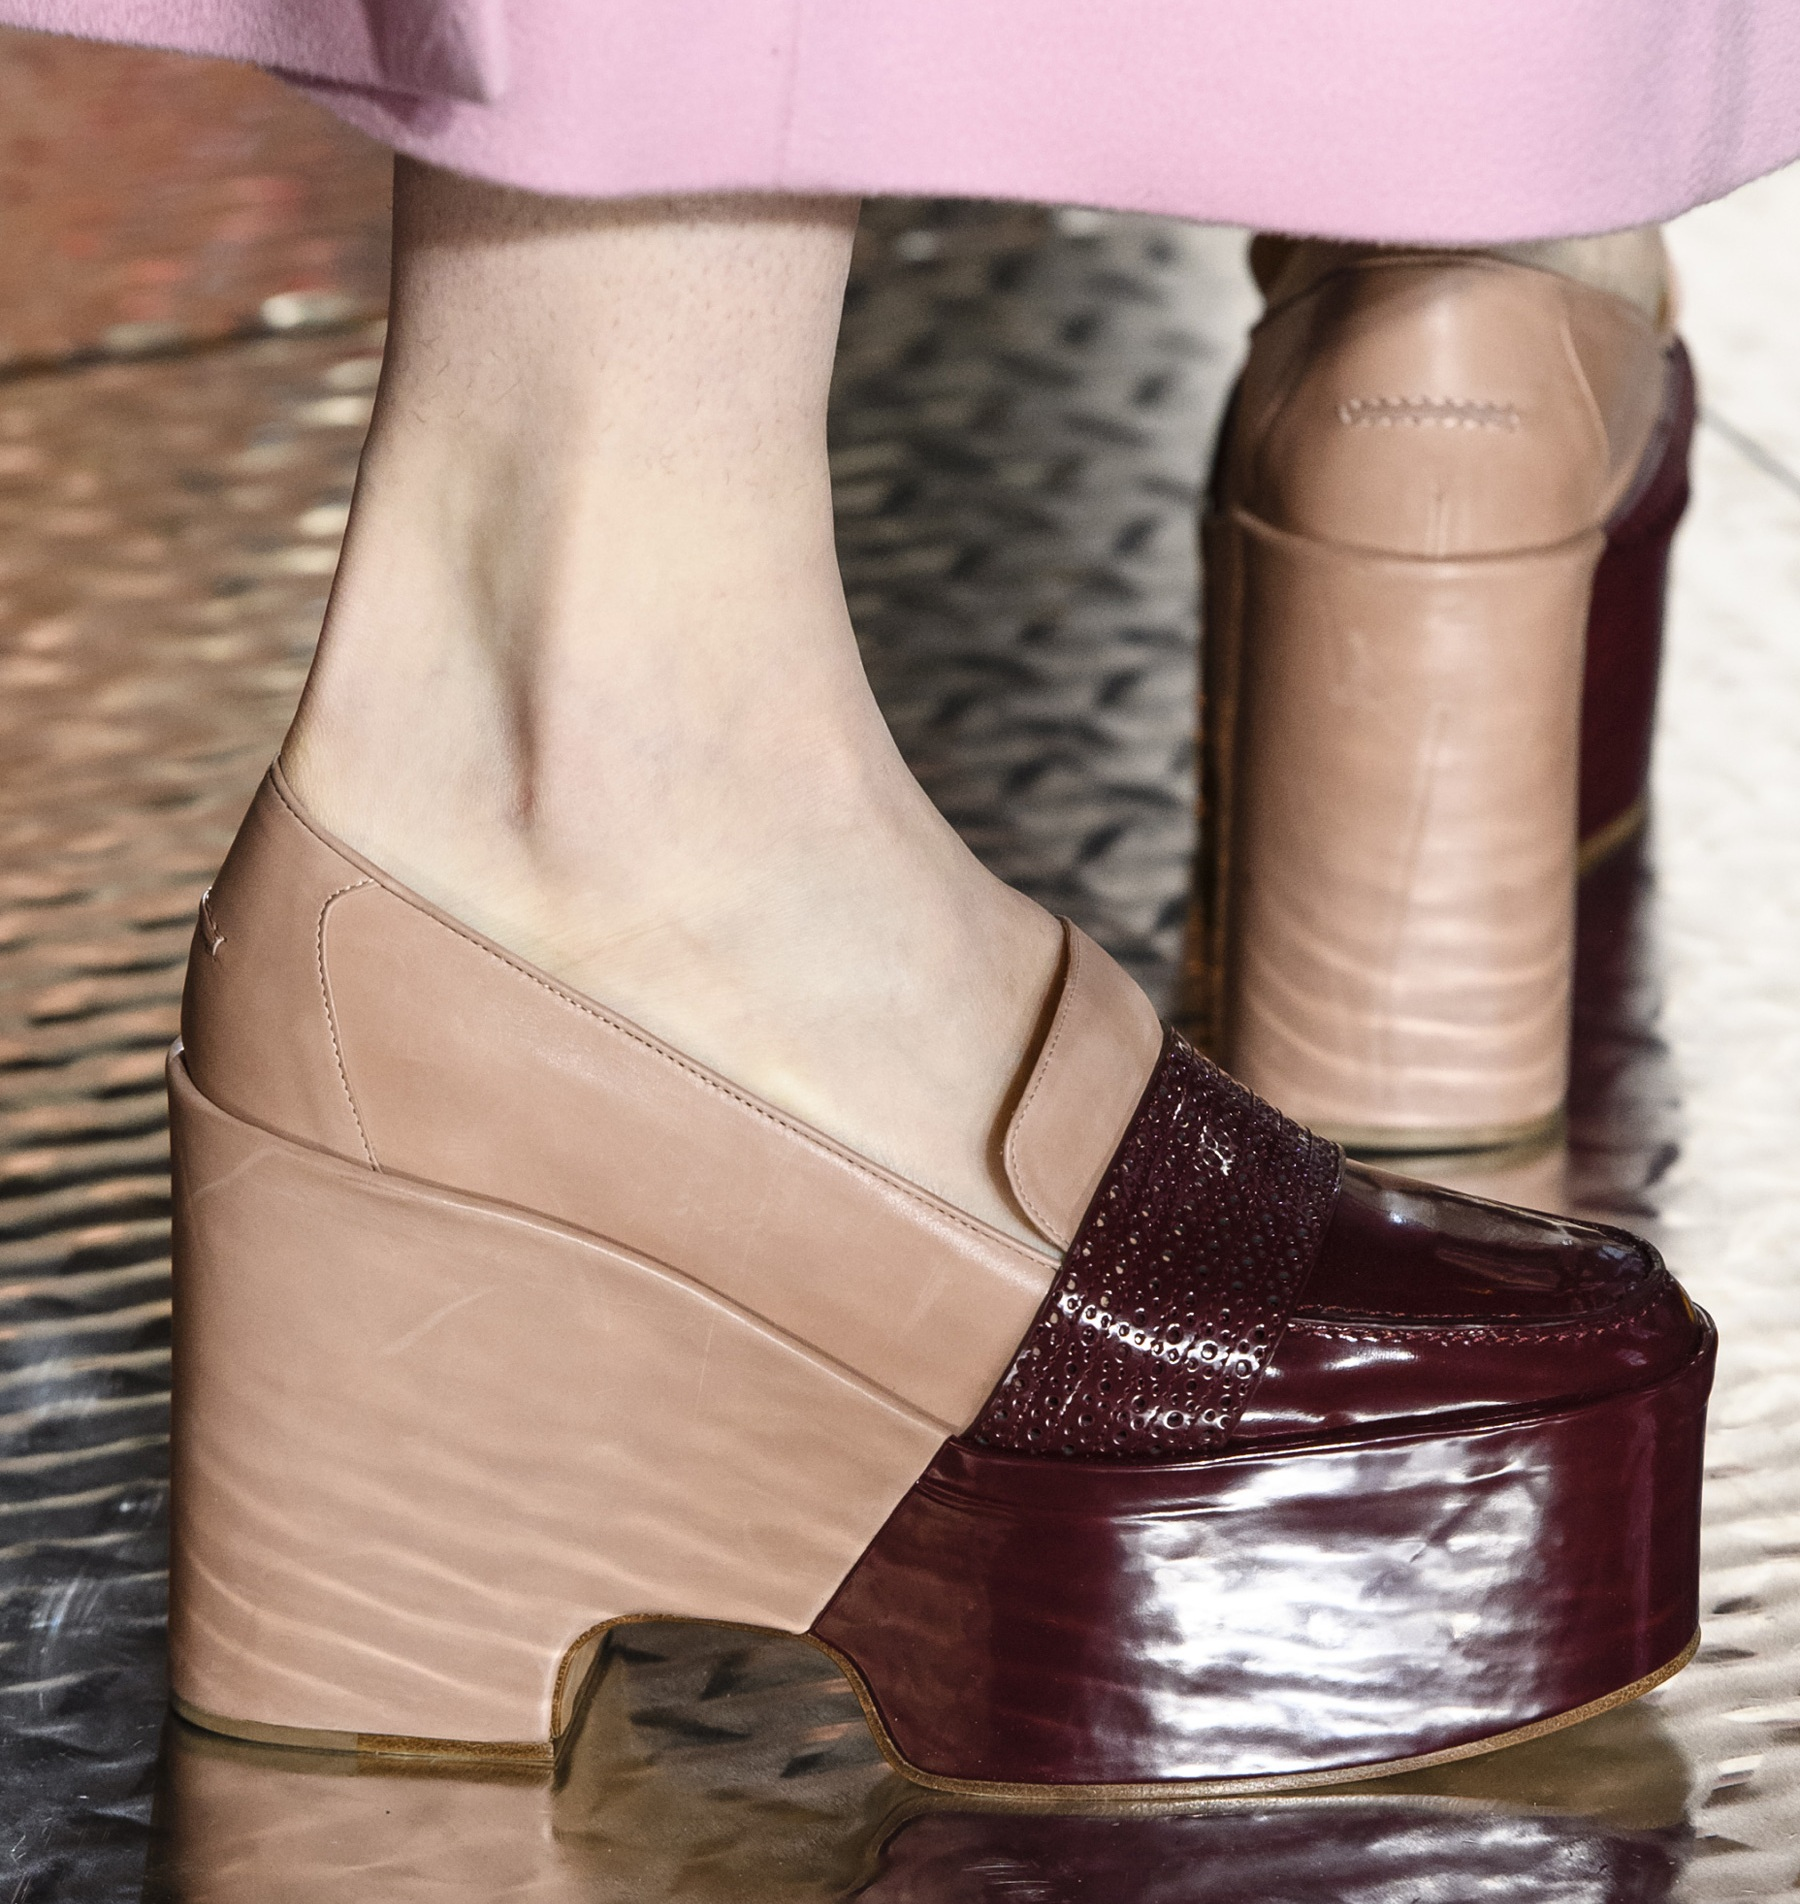 Flur-Magazine-best-shoes-fw17-gabriela-hearst-clp-rf17-6797